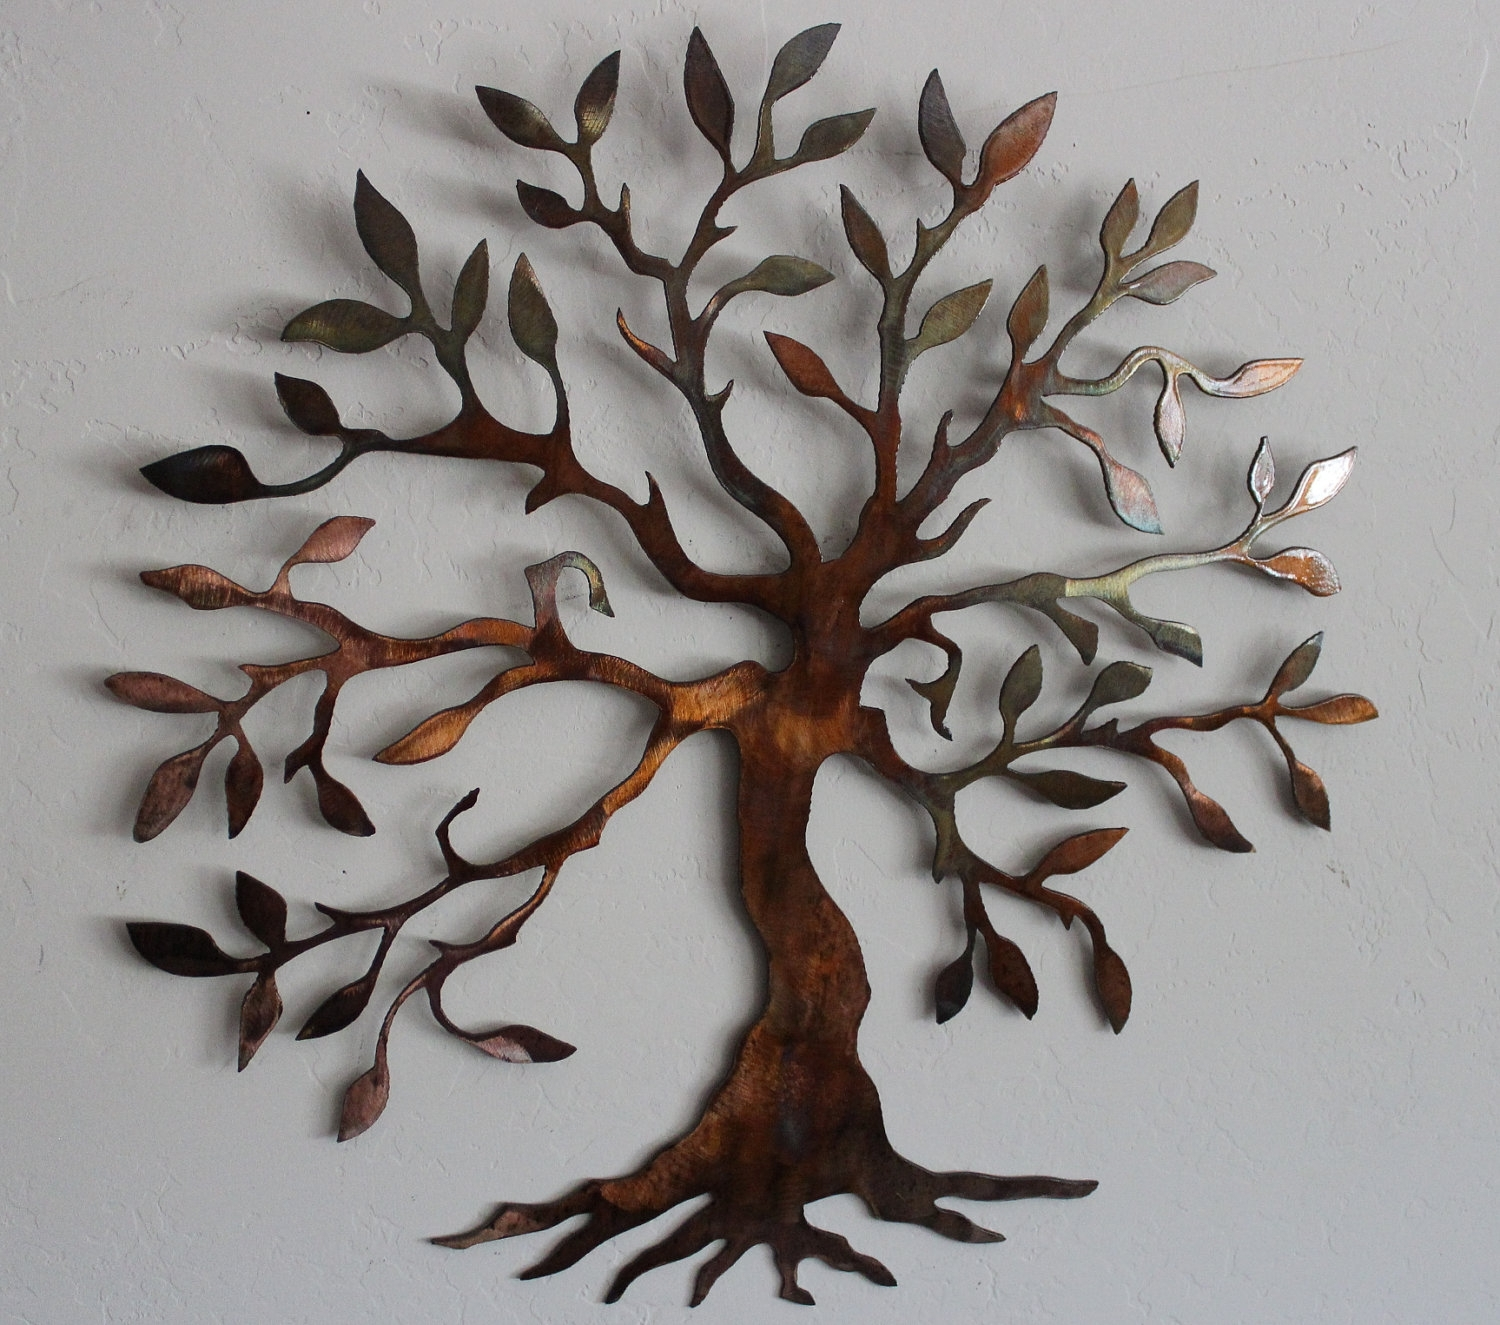 Marvellous Ideas Metal Wall Accents With Olive Tree Of Live Art Throughout Most Up To Date Metal Wall Accents (View 13 of 15)